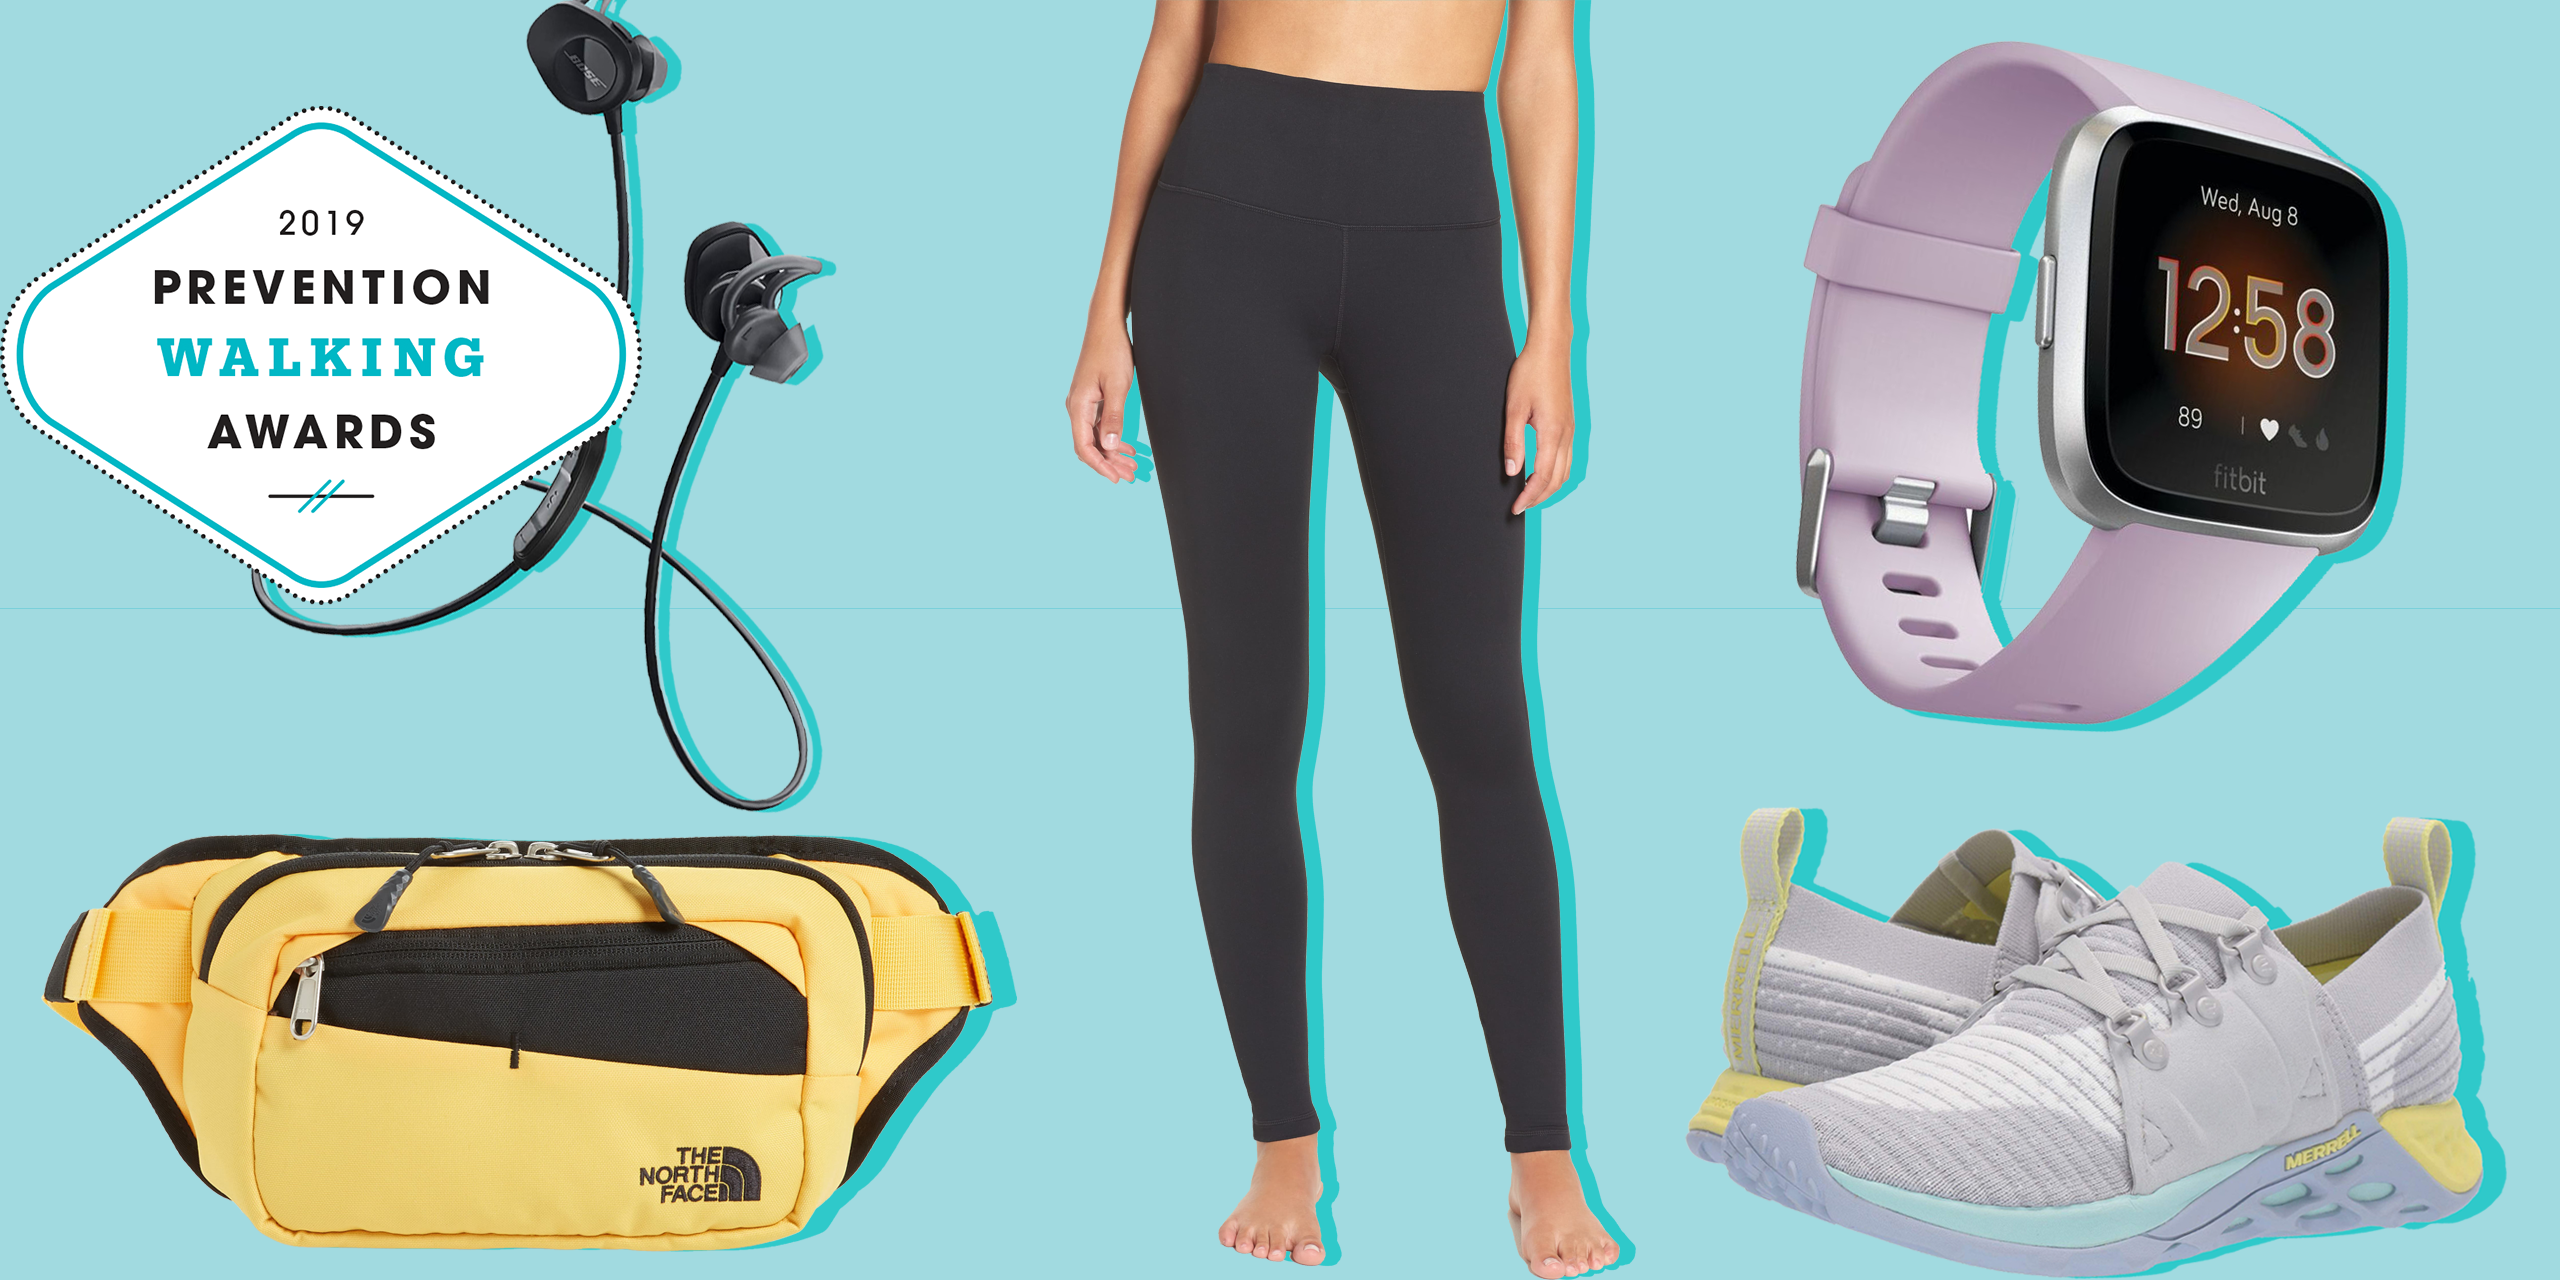 Prevention's 2019 Walking Awards: The Best Fitness Gear to Help You Stay Motivated